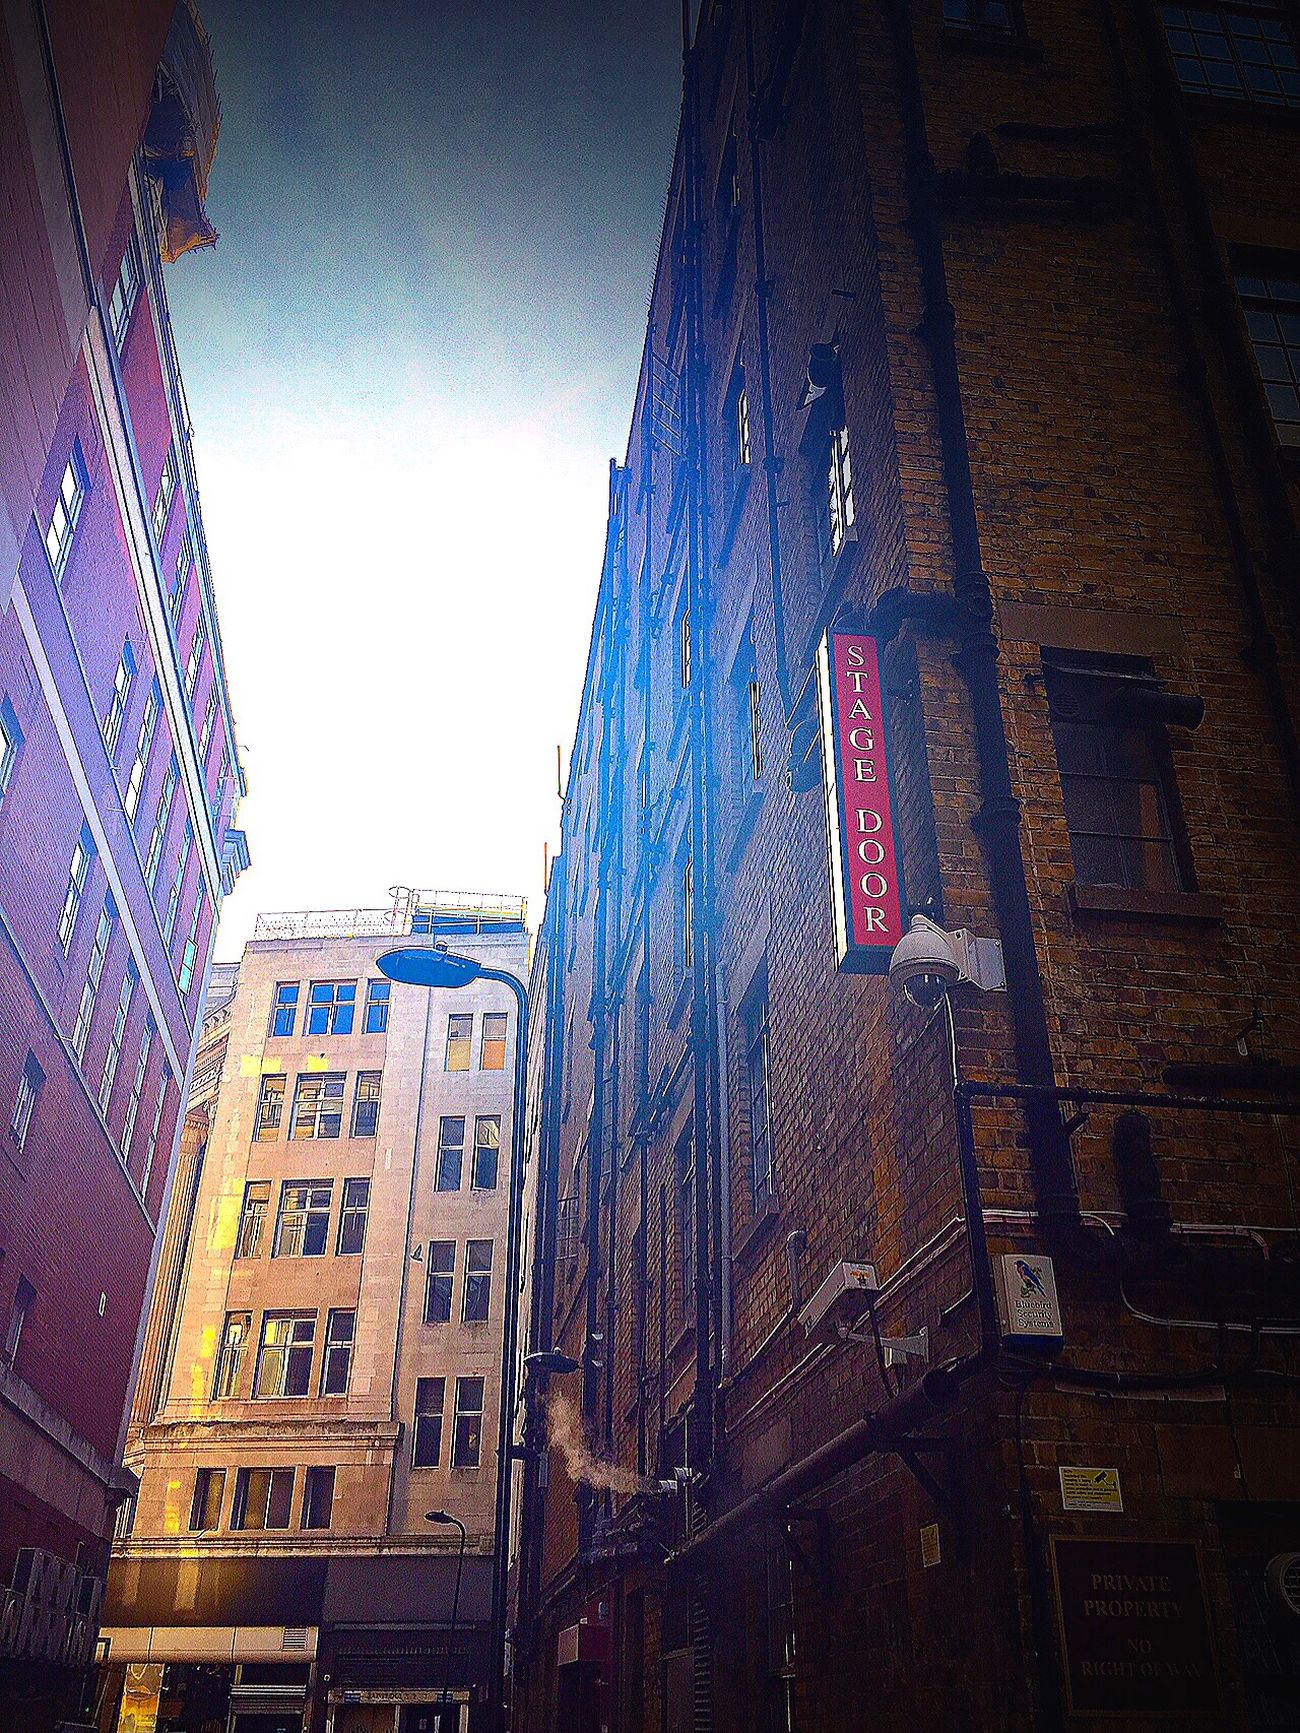 Stagedoor Backstreets & Alleyways Building Exterior Architecture Low Angle View Built Structure City Travel Destinations Skyscraper City Life Outdoors No People Sky Day Modern LONDON❤ Urban Streetphotography